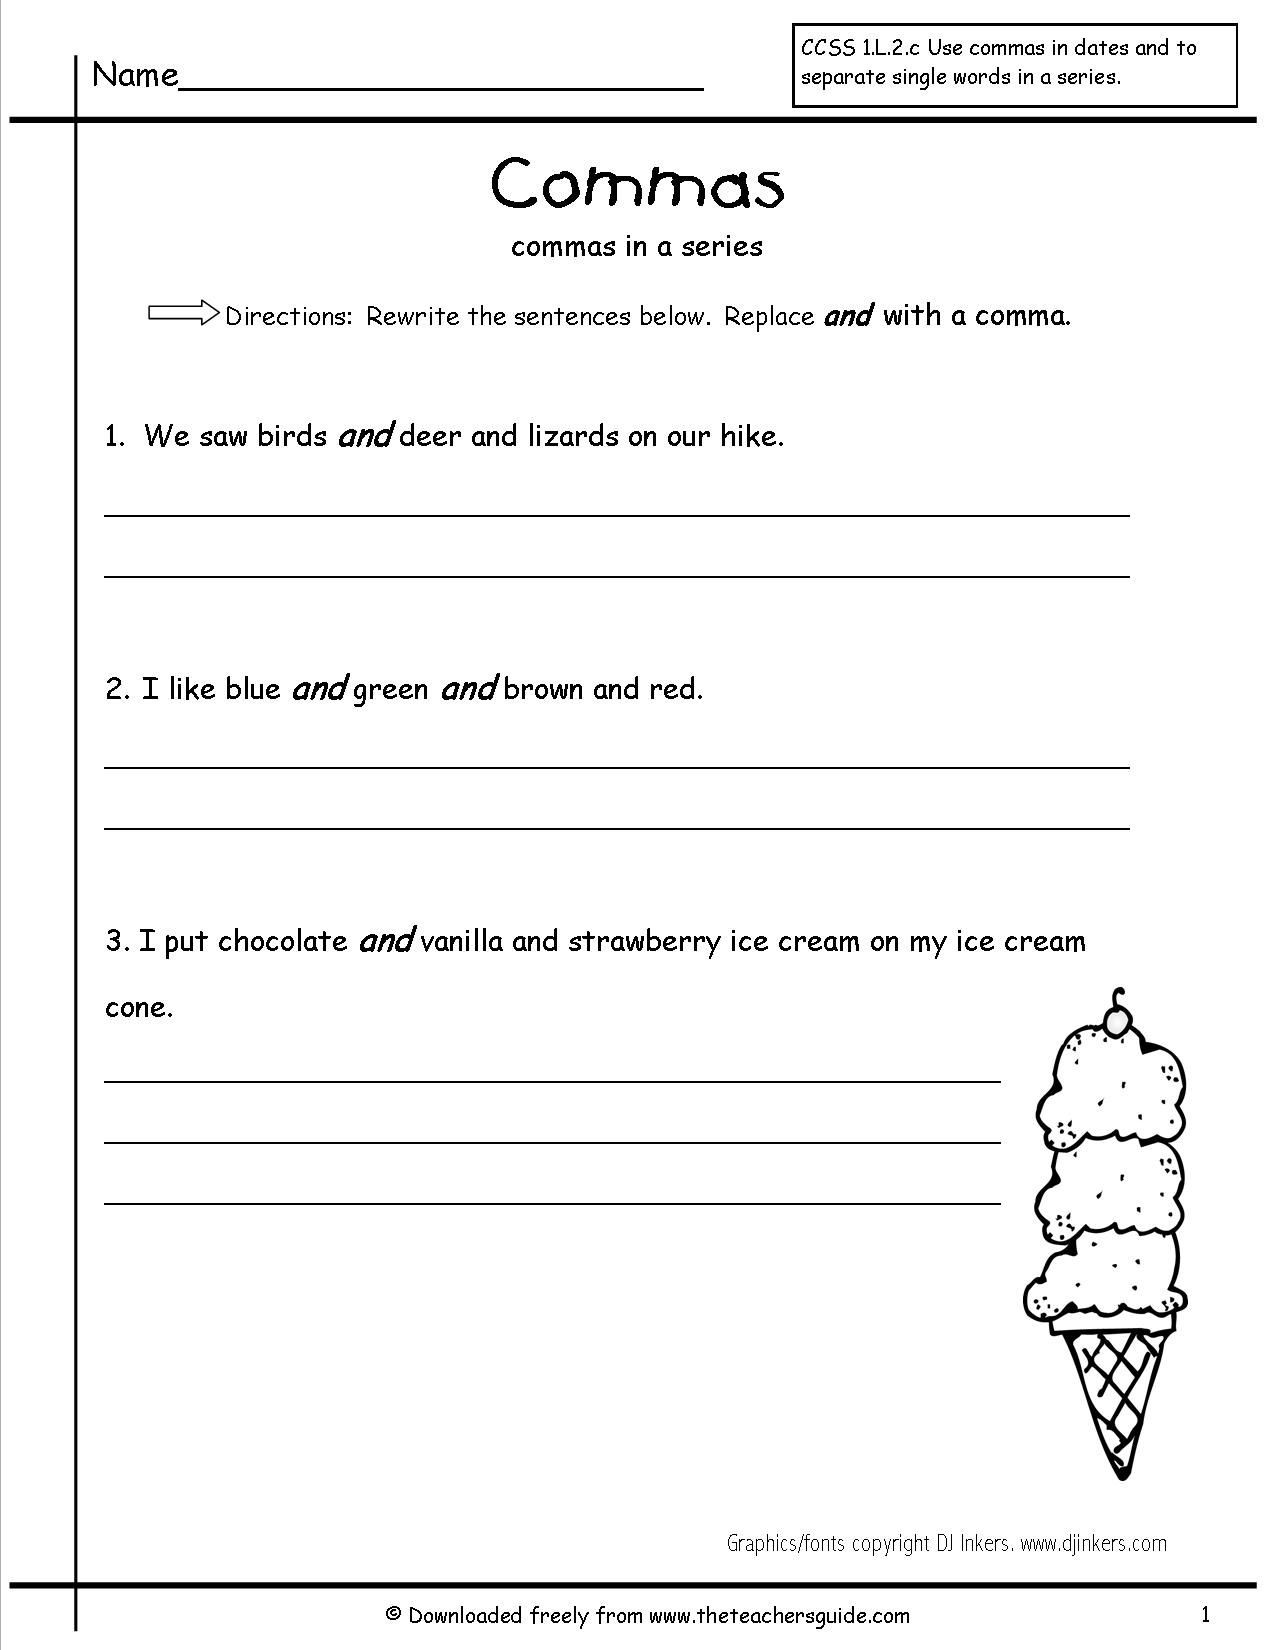 Inflectional Endings Worksheets 2nd Grade Mas In A Series Worksheet Journeys Lesson 20 Dex the